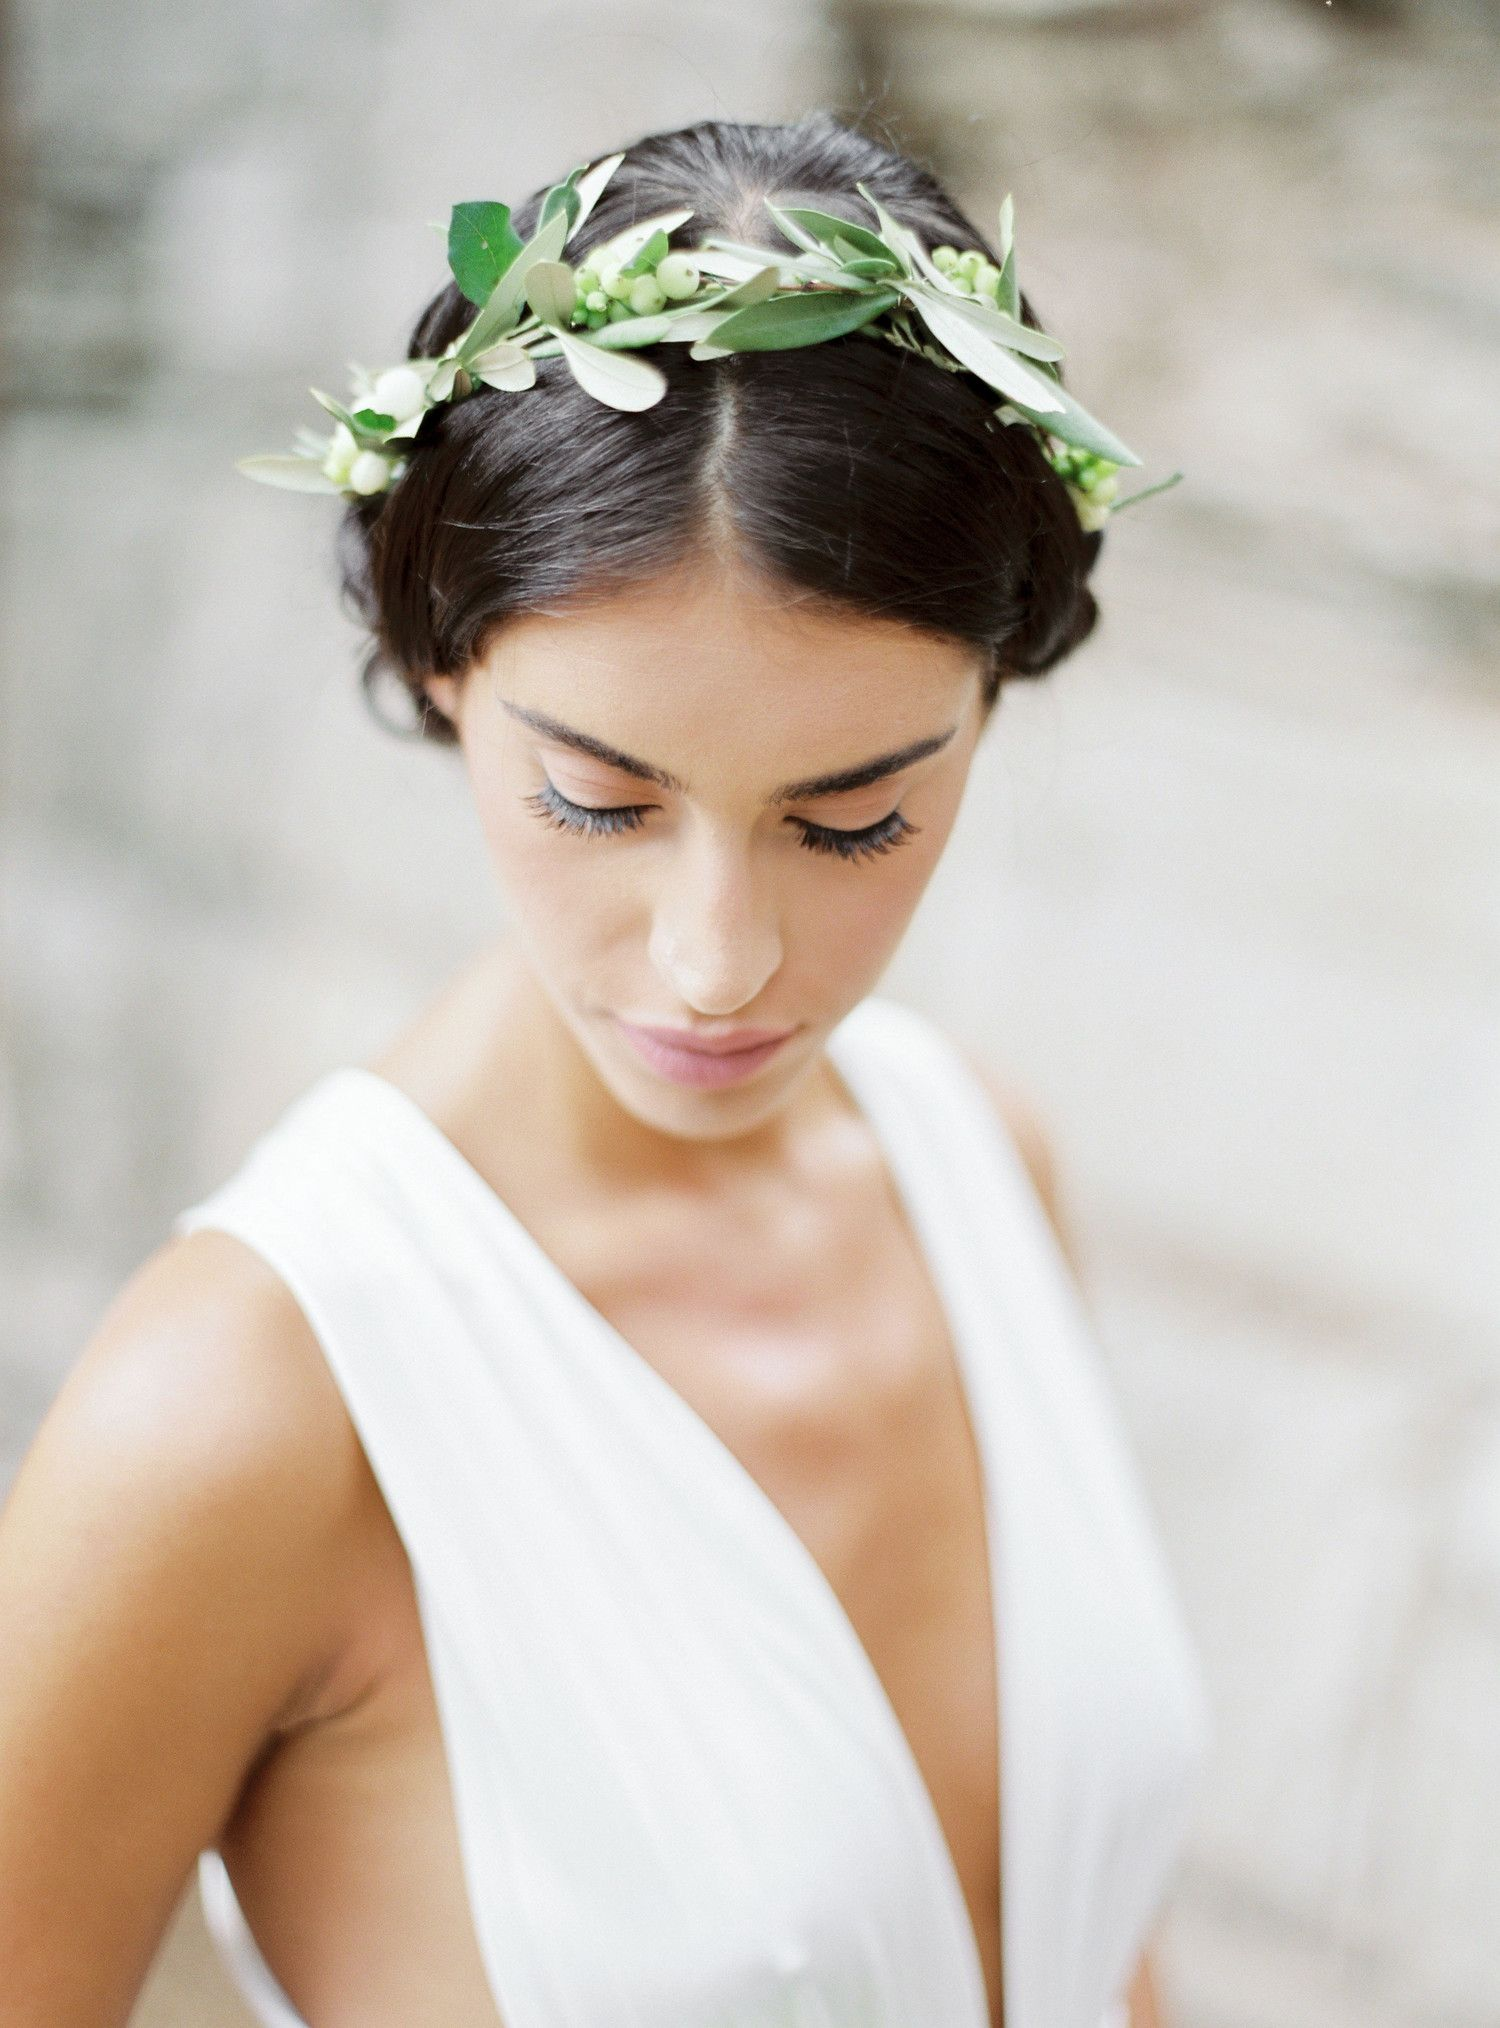 The New Flower Crown: Greenery Crowns | Greenery, Crown and Flower ...